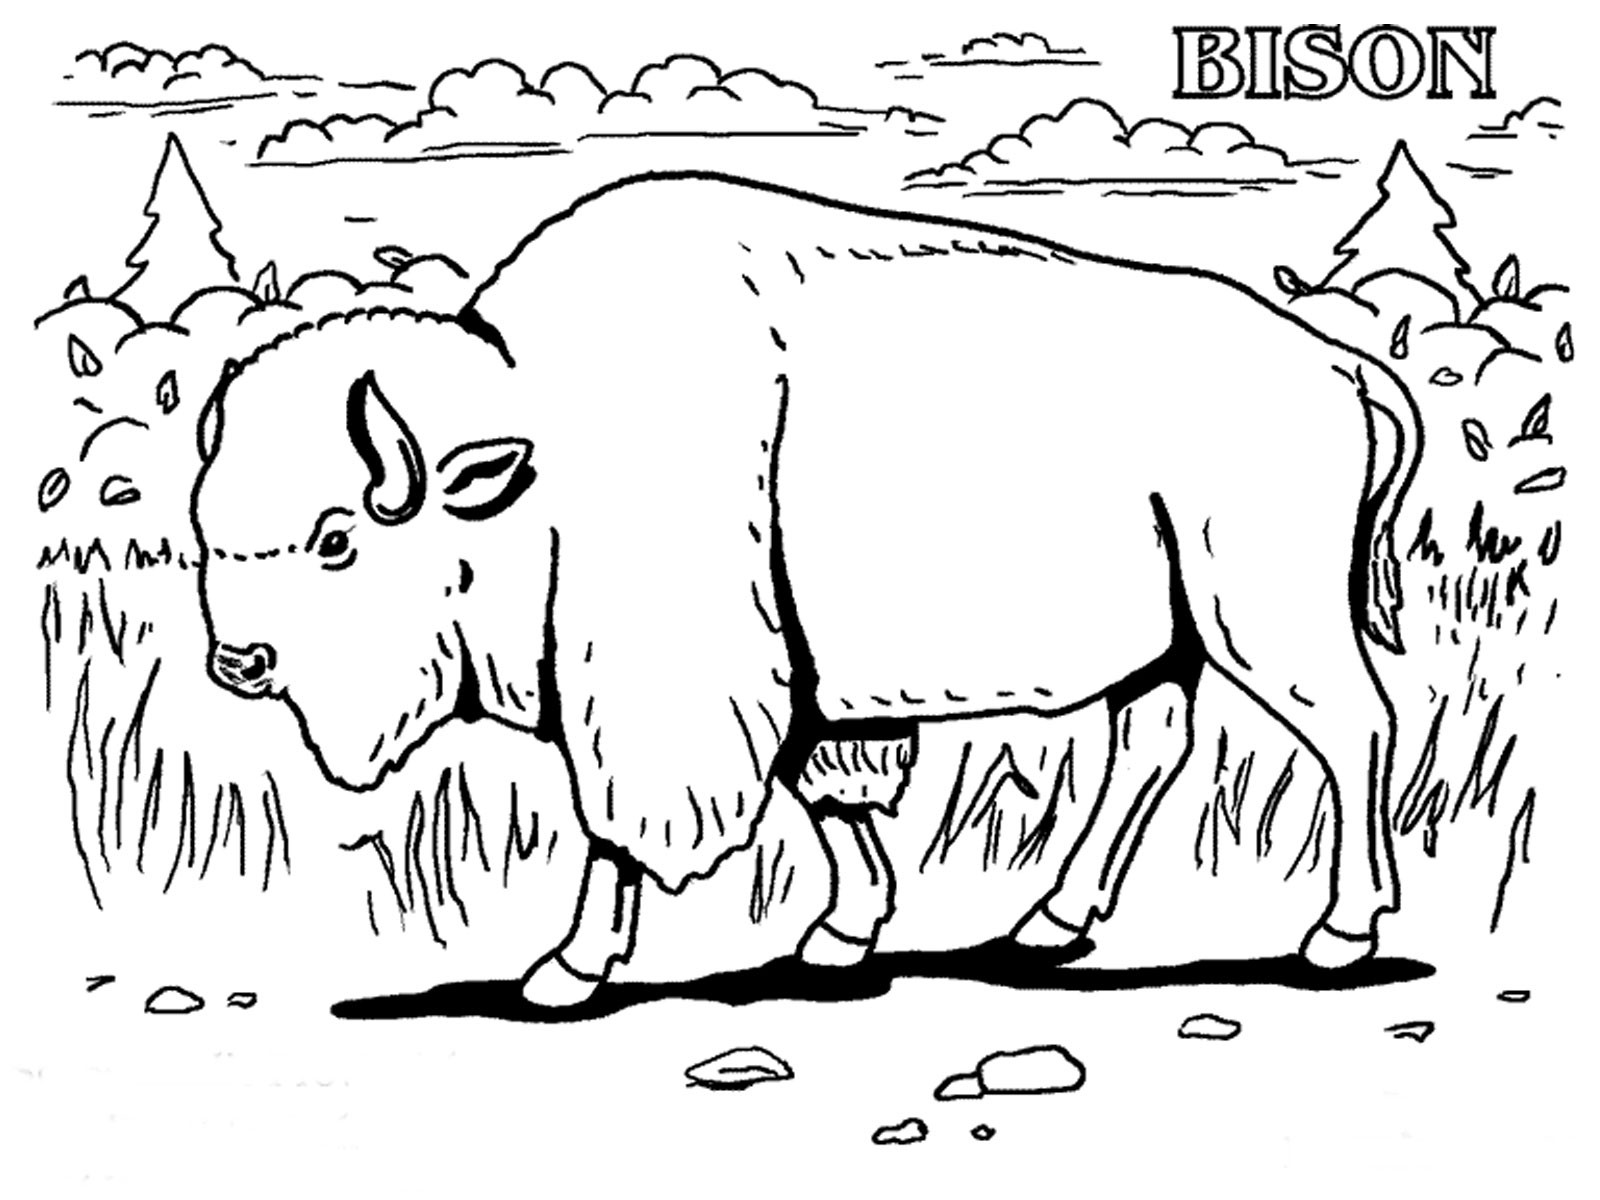 1600x1200 Free Printable Bison Coloring Pages For Kids